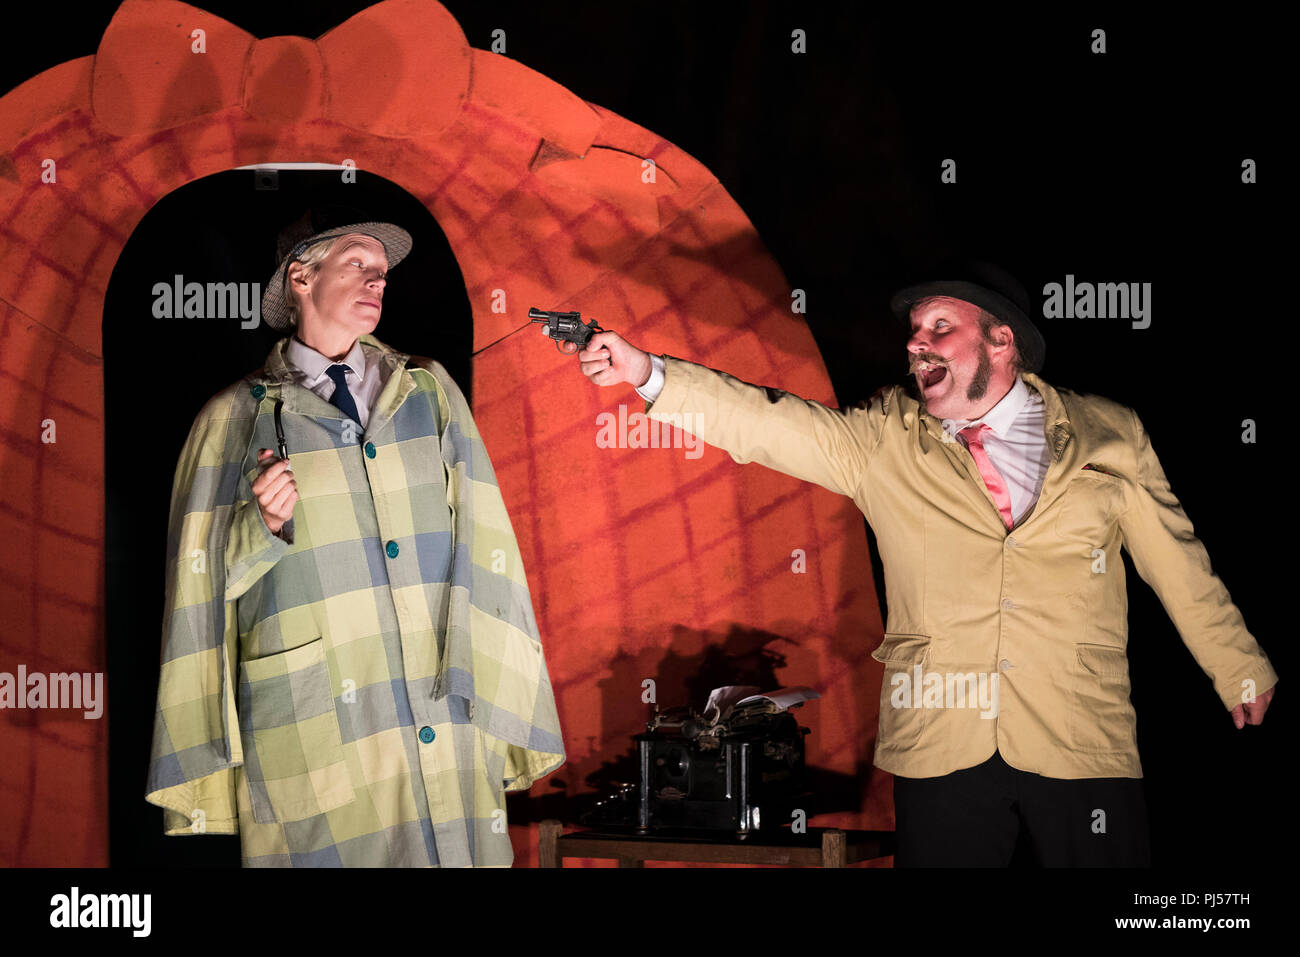 A performance of Hound of the Baskervilles by Illyria Theatre Company in Cornwall. - Stock Image